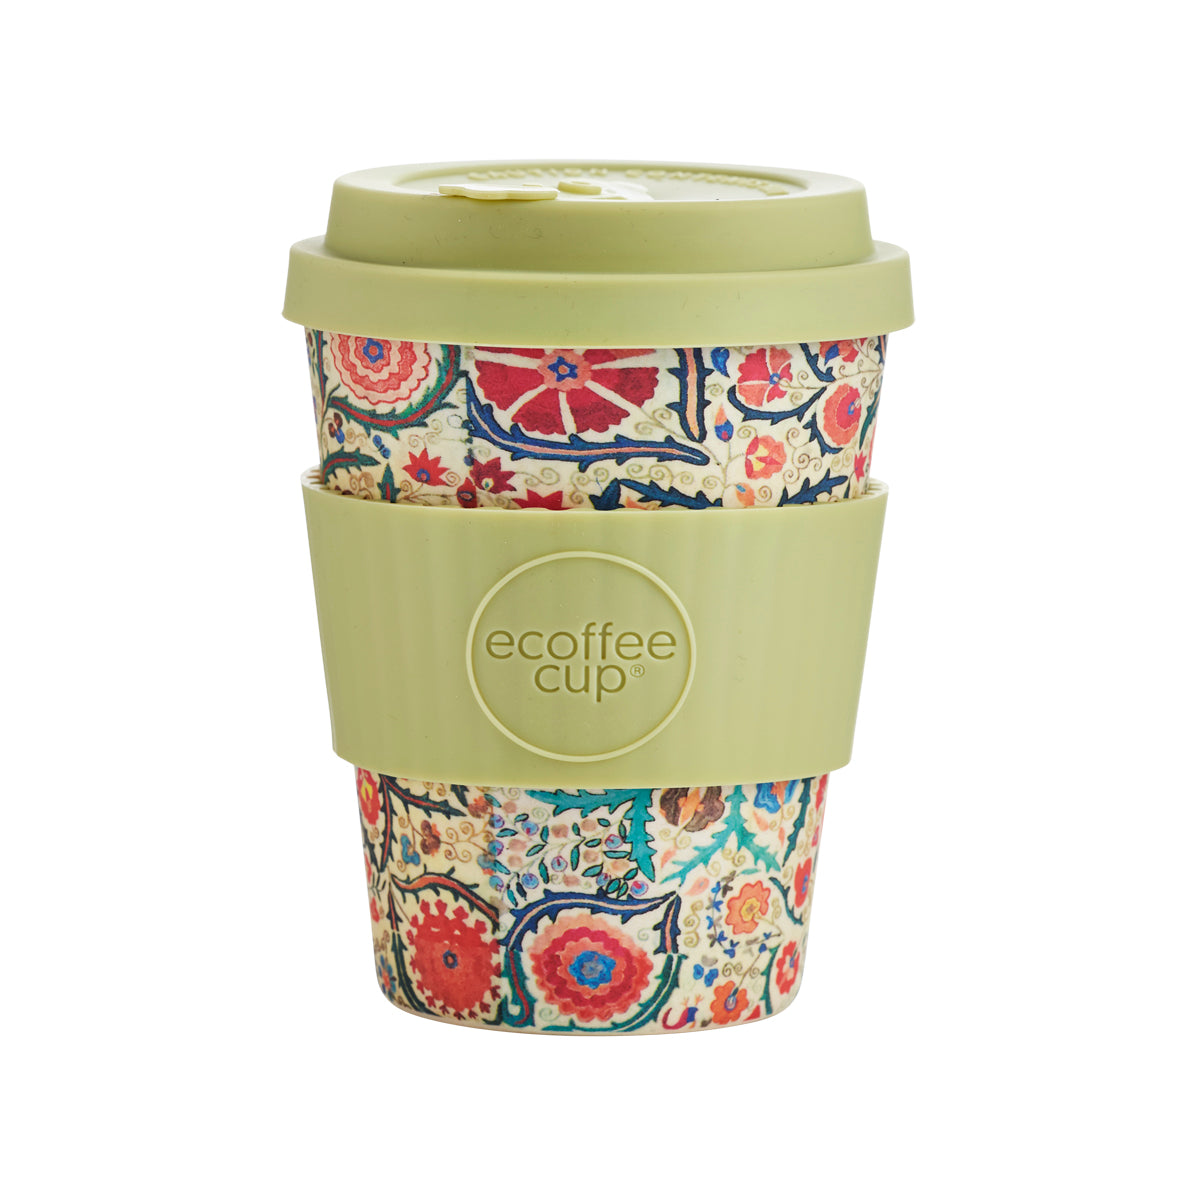 PapaFranco Ecoffee Cup 12oz